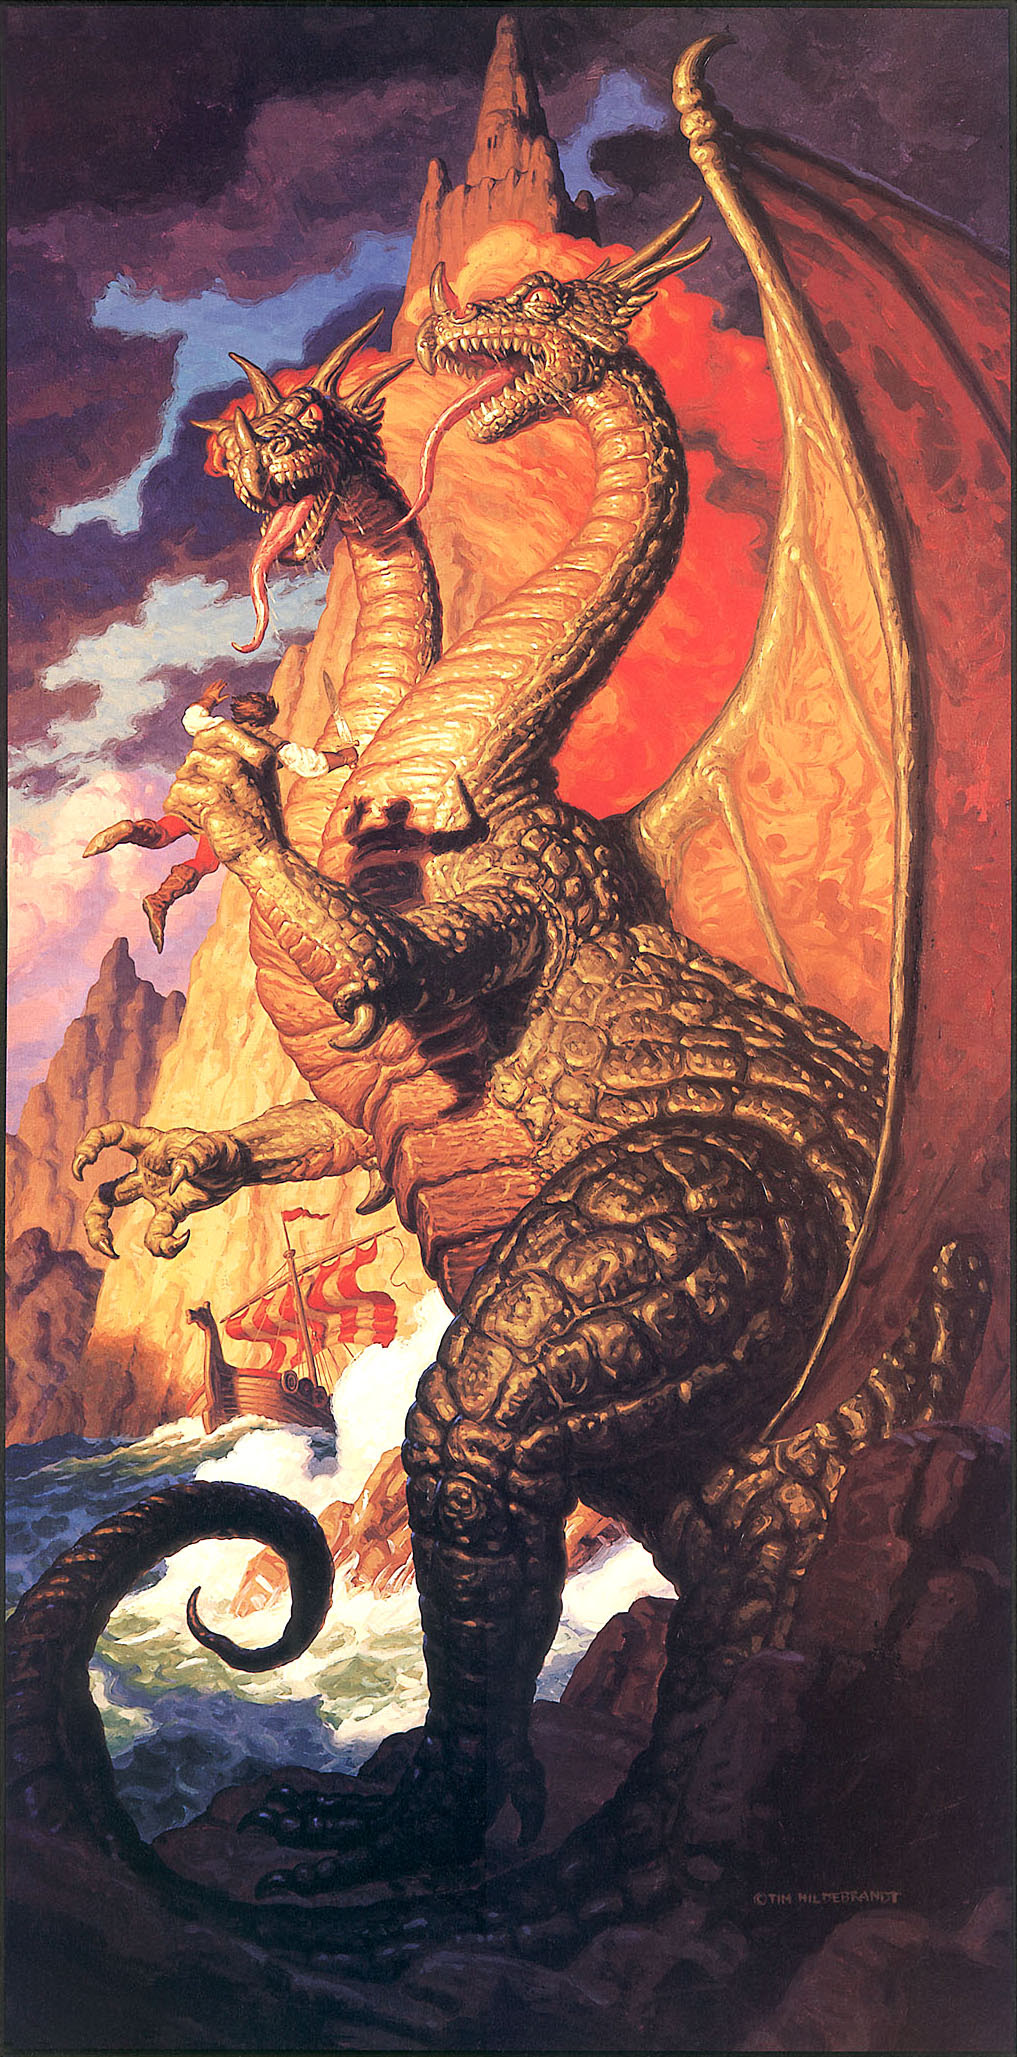 Tim Hildebrandt -  The Dragon's Keep